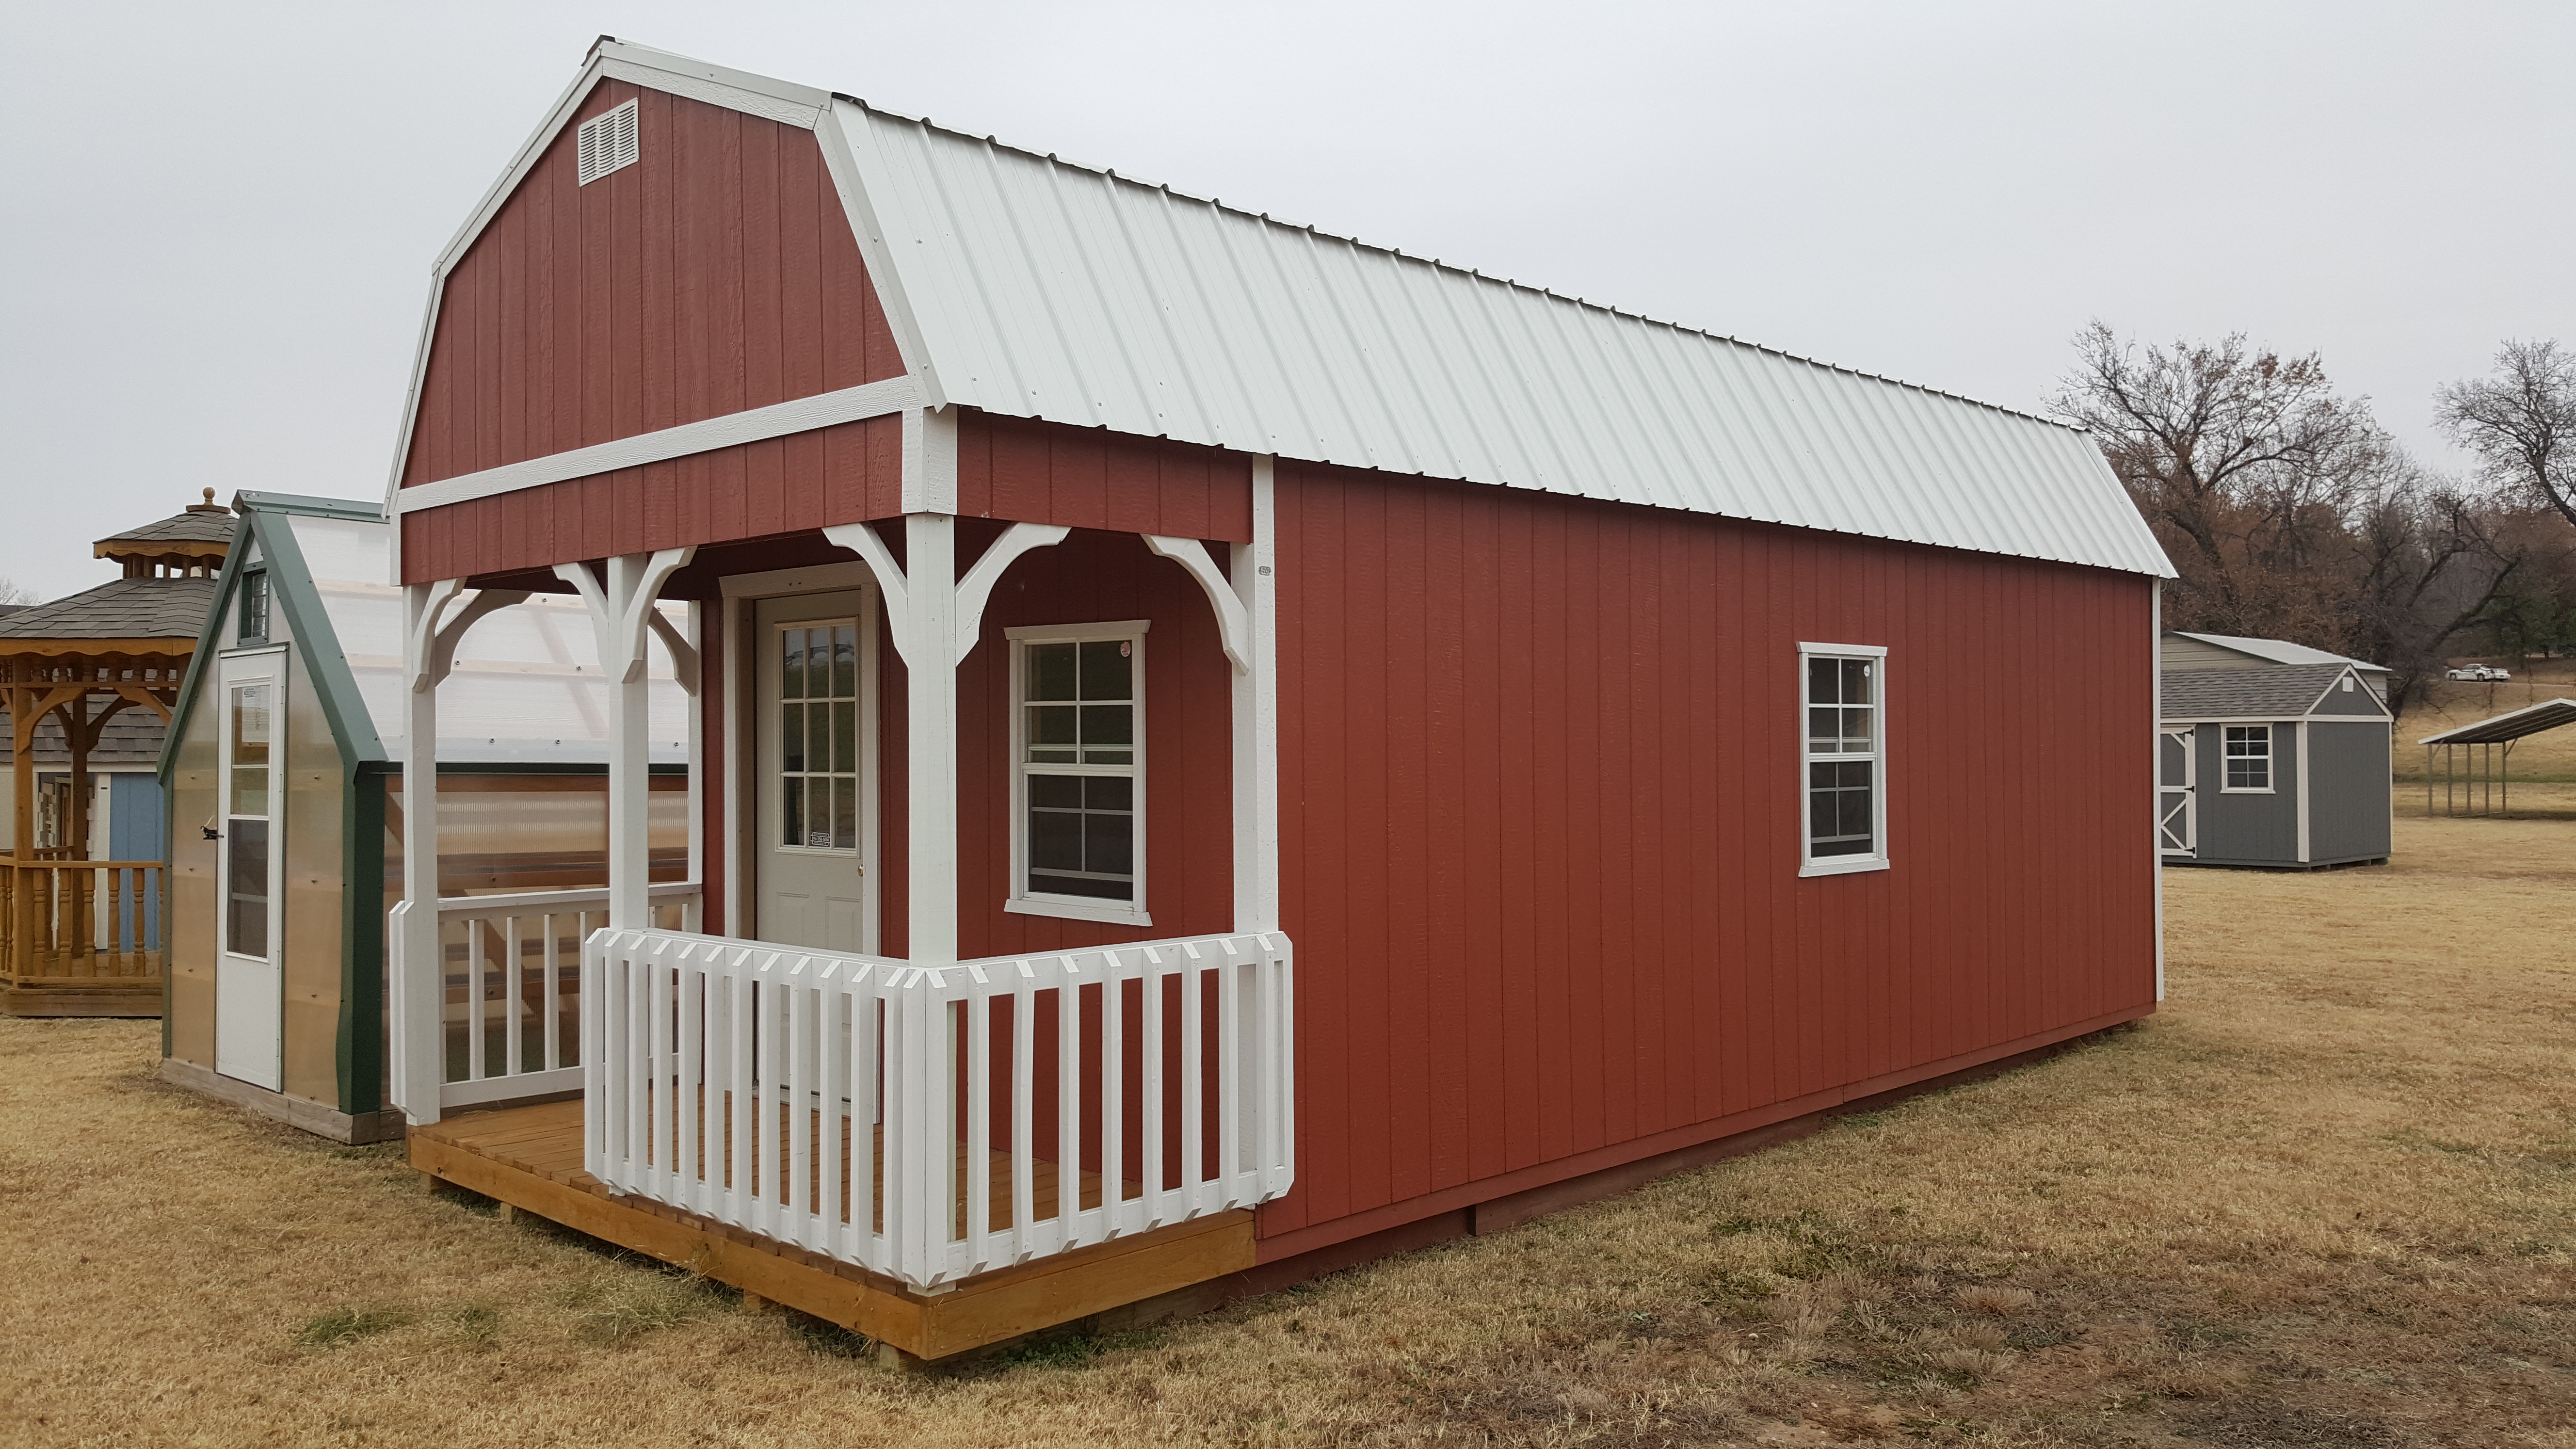 PORTABLE BUILDINGS | Garages, Barns, Portable Storage